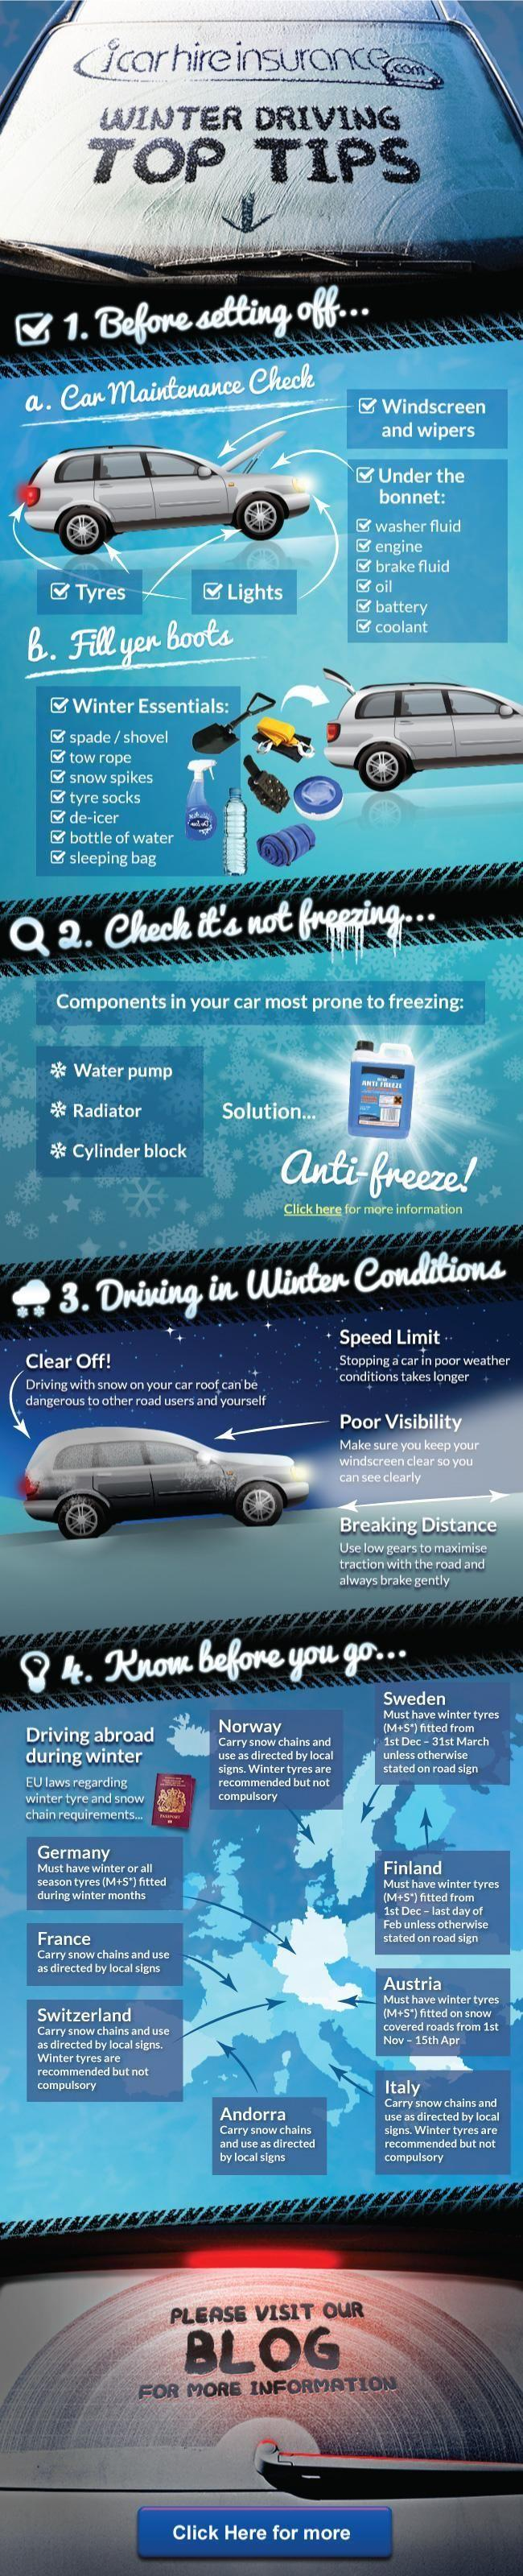 Winter Driving Tips from iCarhireinsurance.com